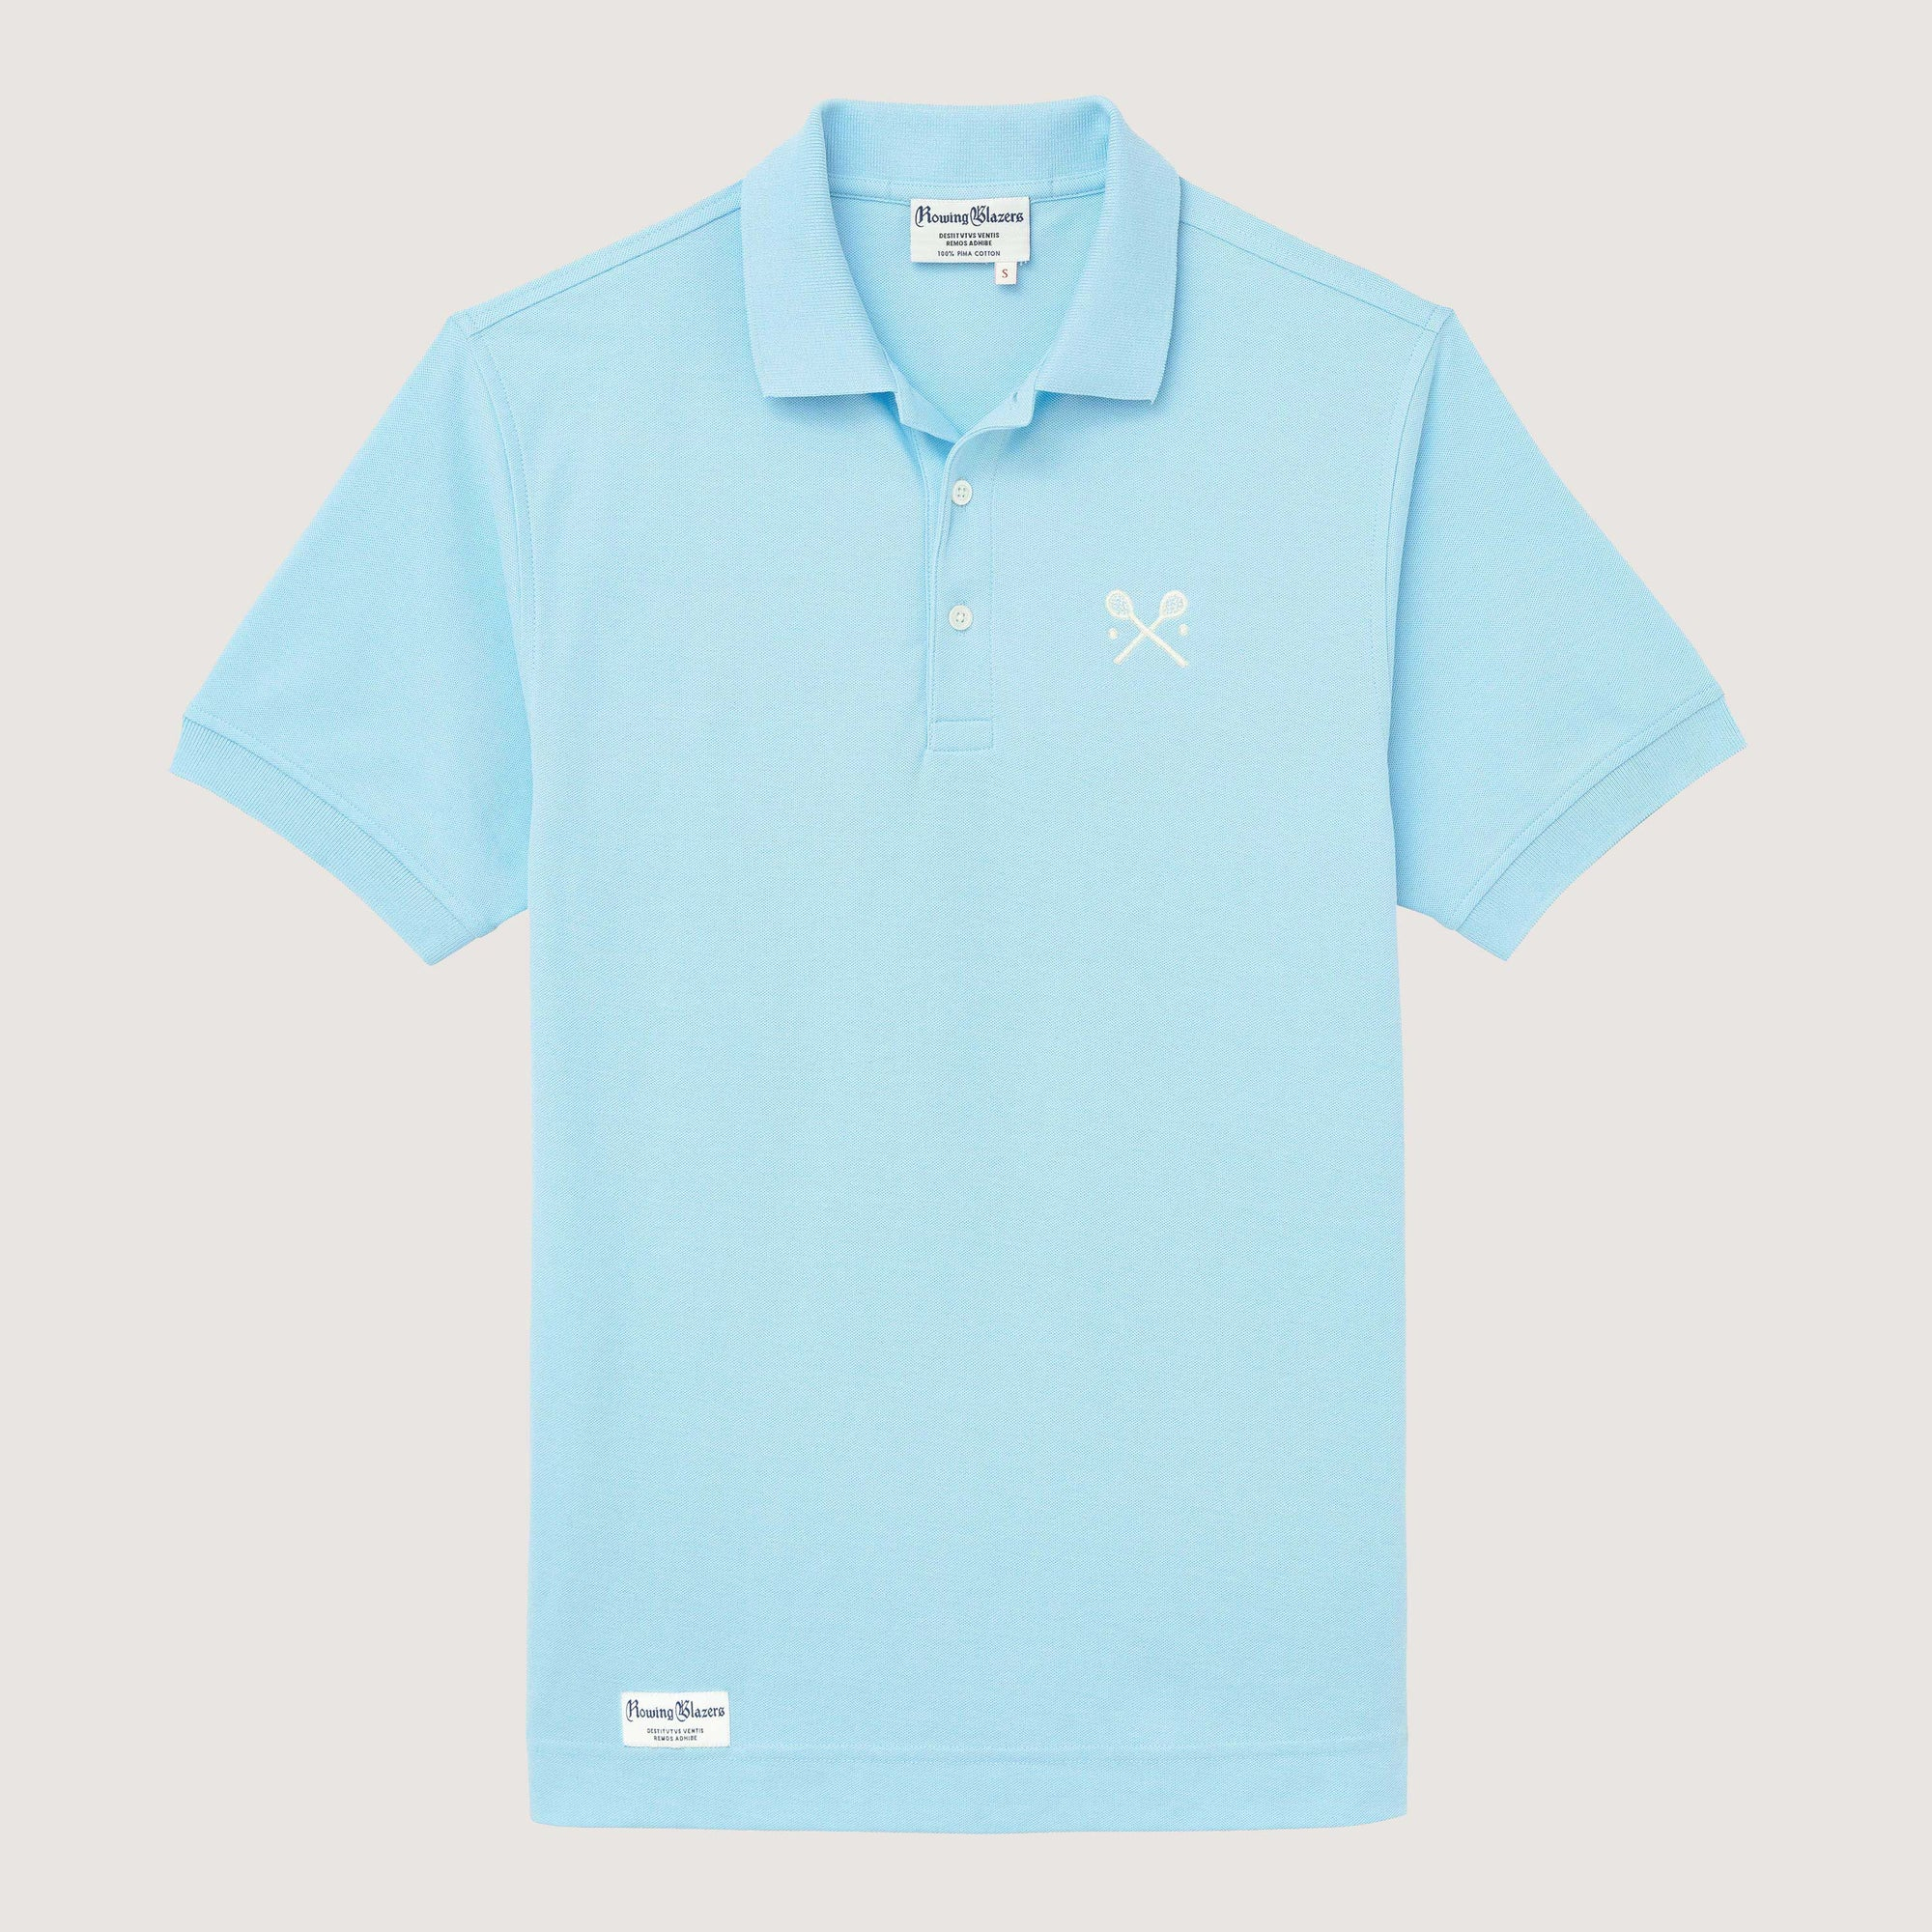 Rowing Blazers Lacrosse Tennis Shirt Light Blue